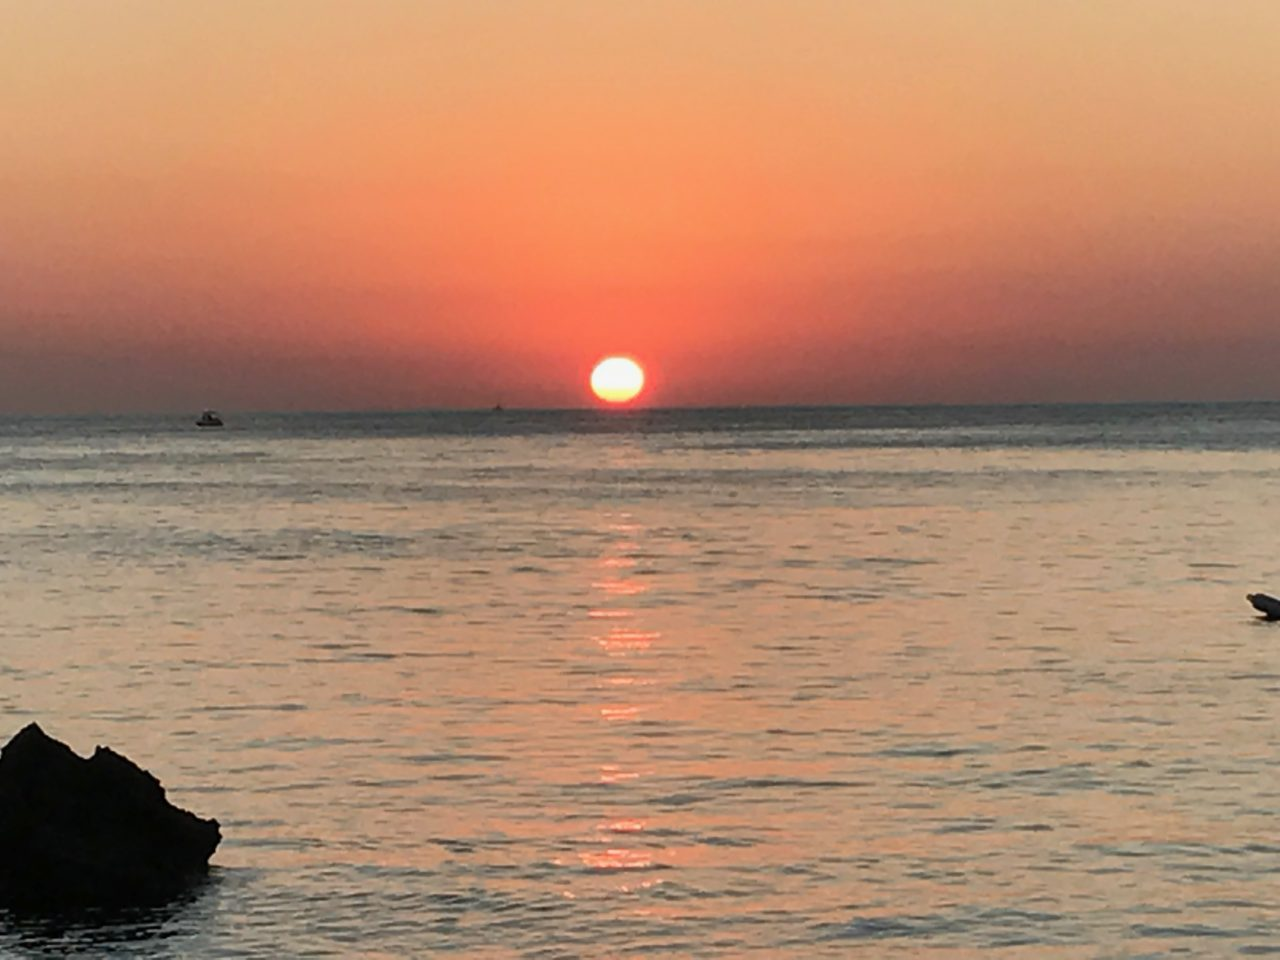 Sun Setting In The Ocean With Boat And Cliff